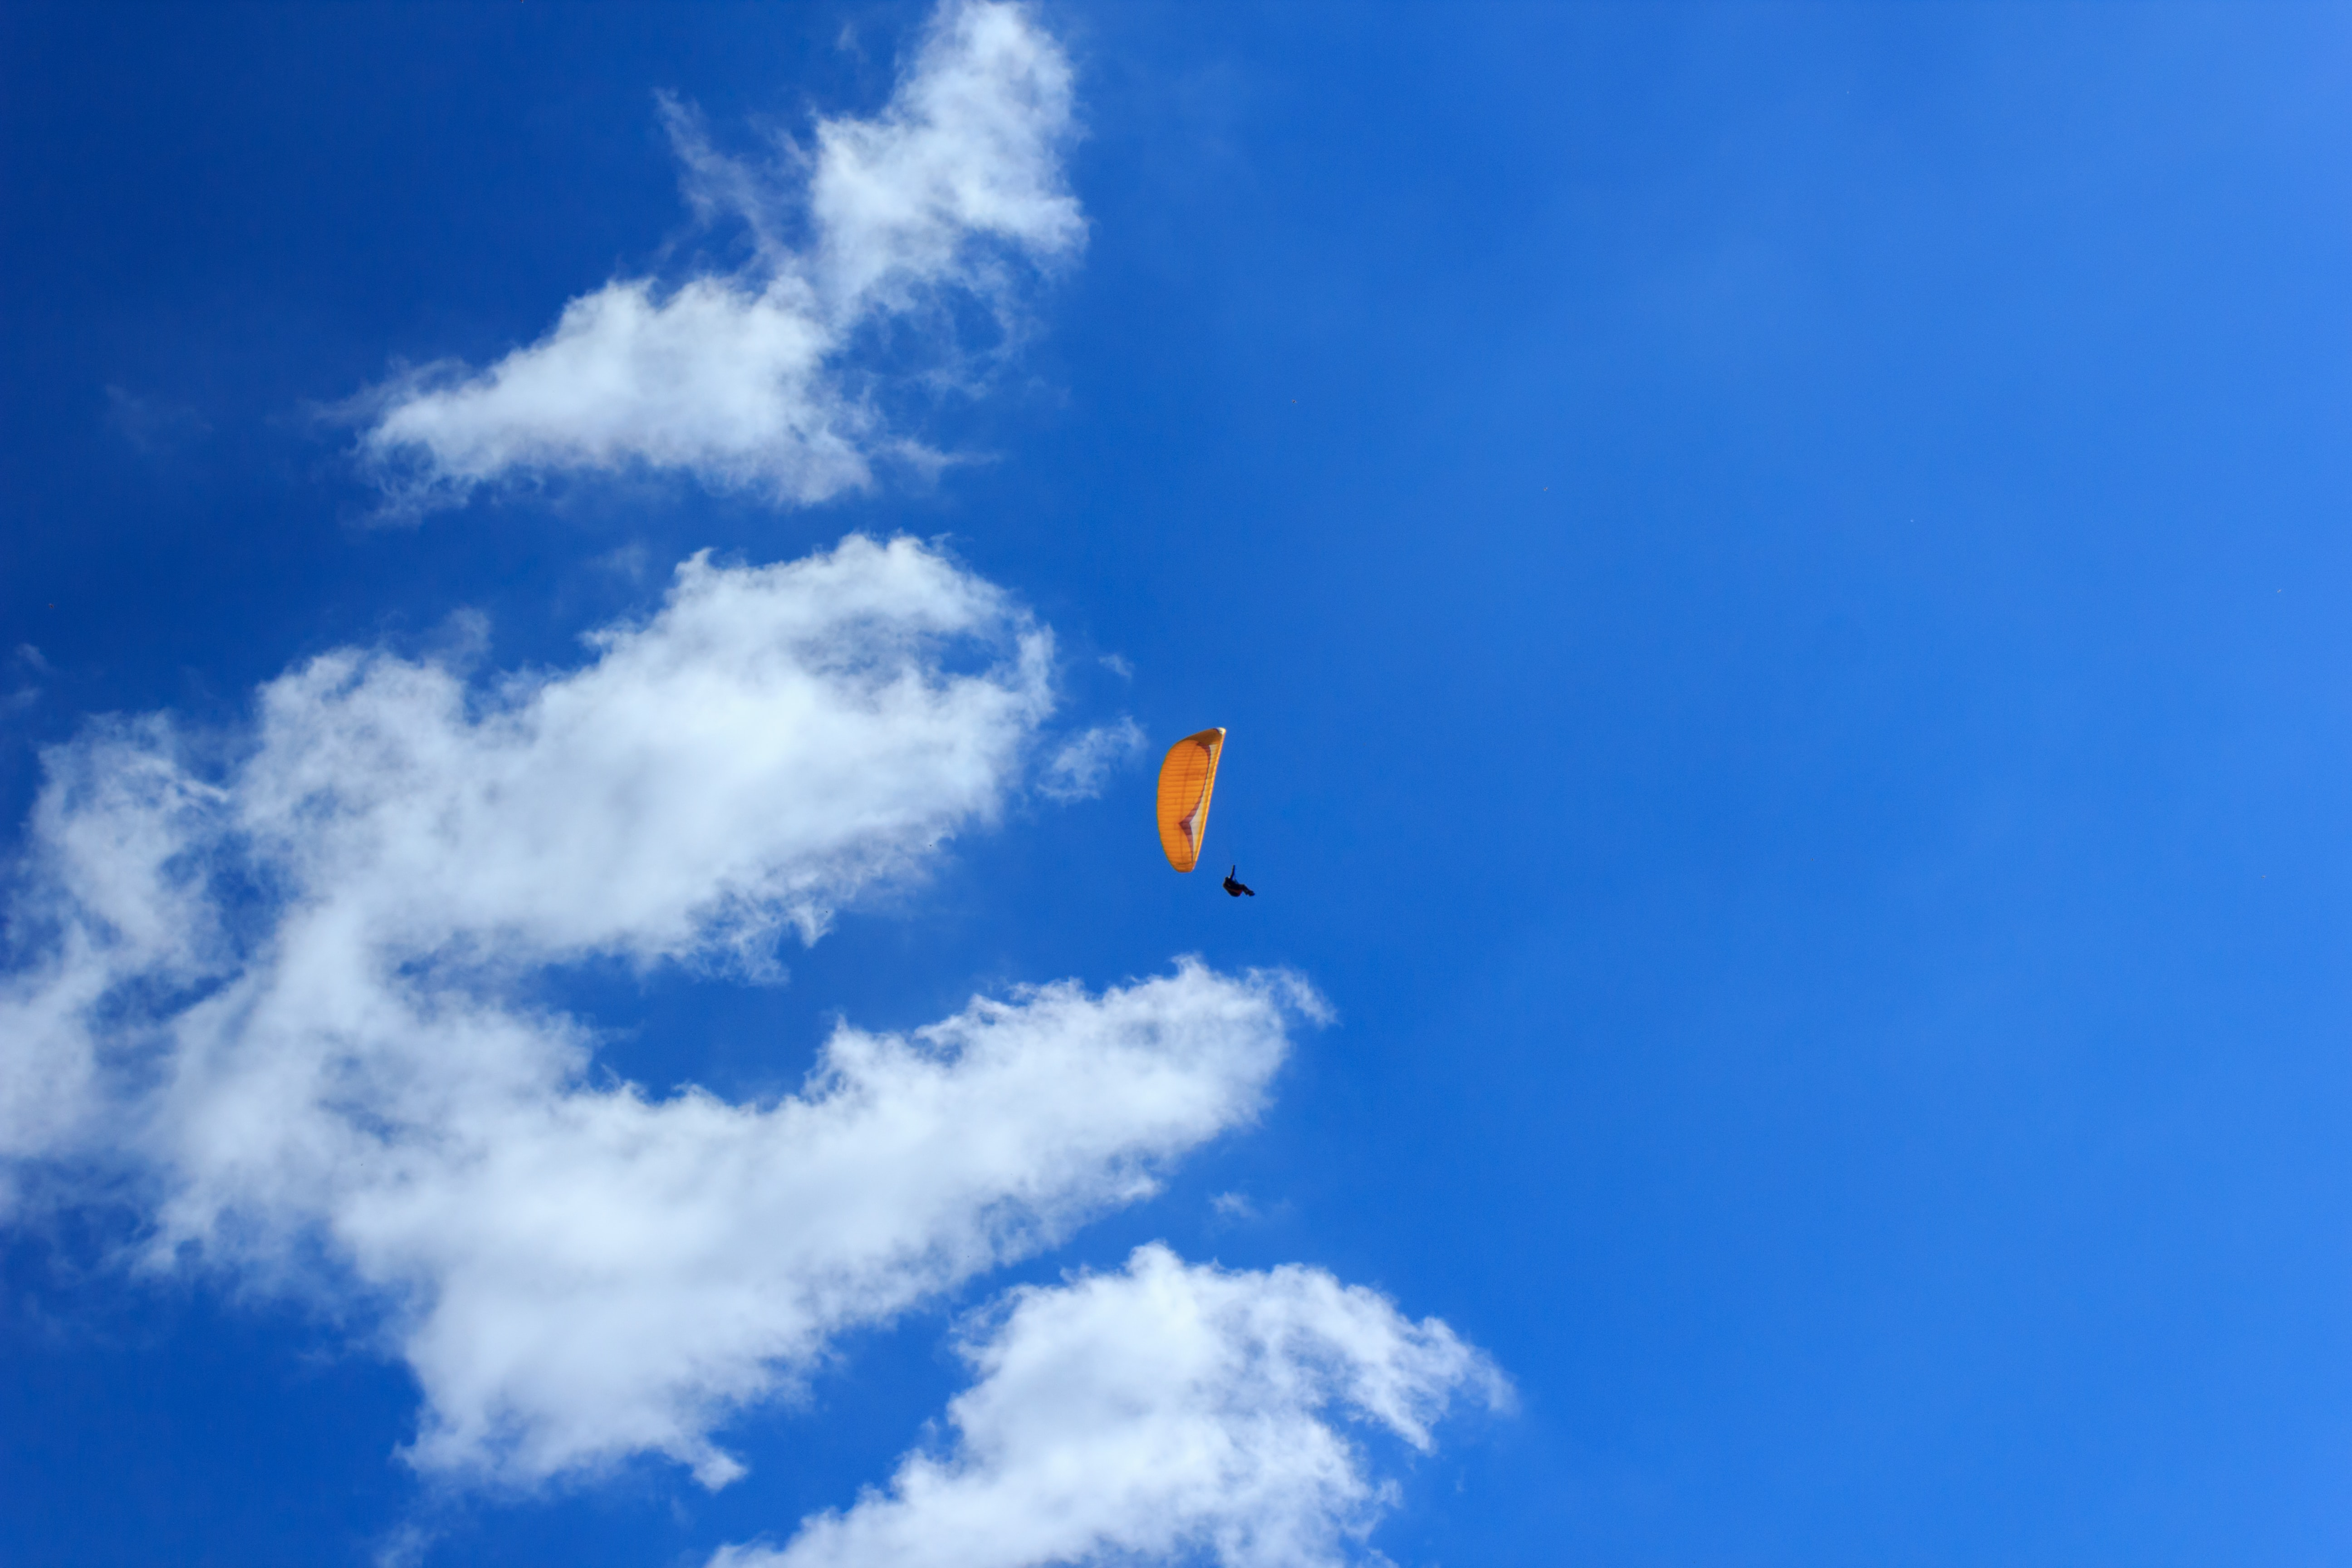 person using parachute during daytime